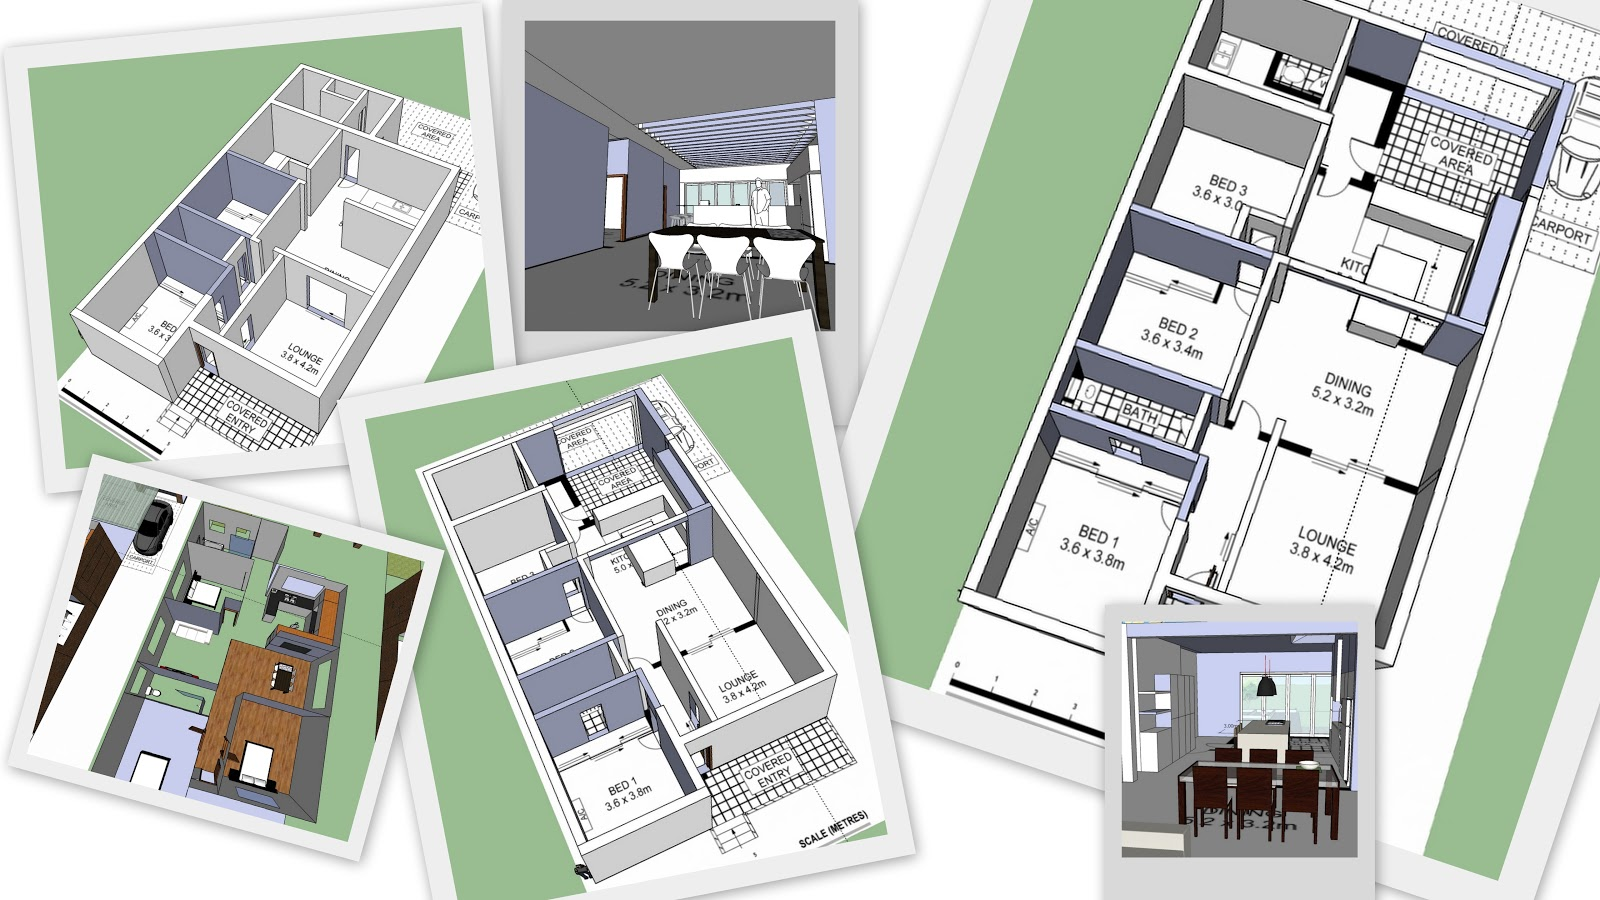 Sketchup home design tutorial 28 images image gallery for Tutorial for home design 3d